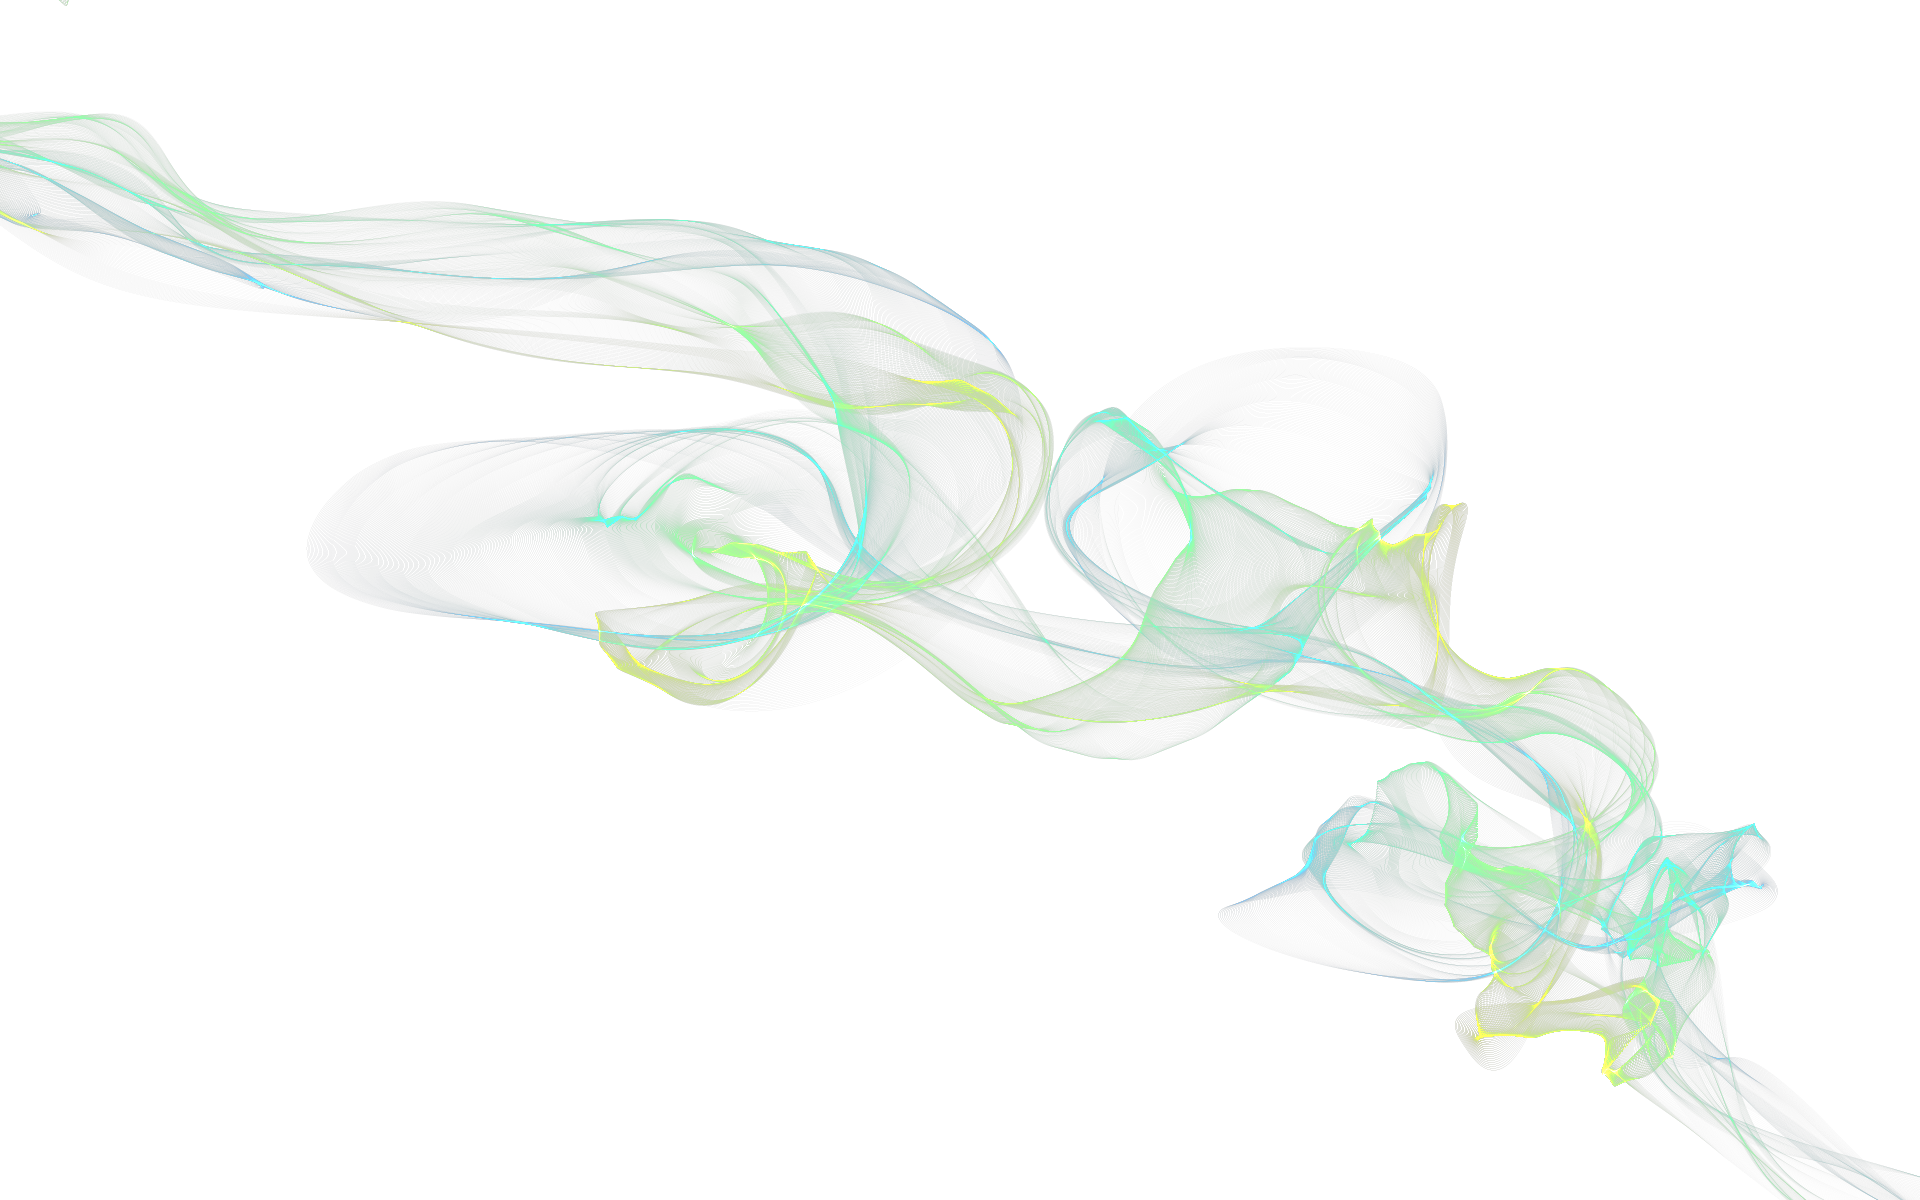 Abstract Flame Png image #9092